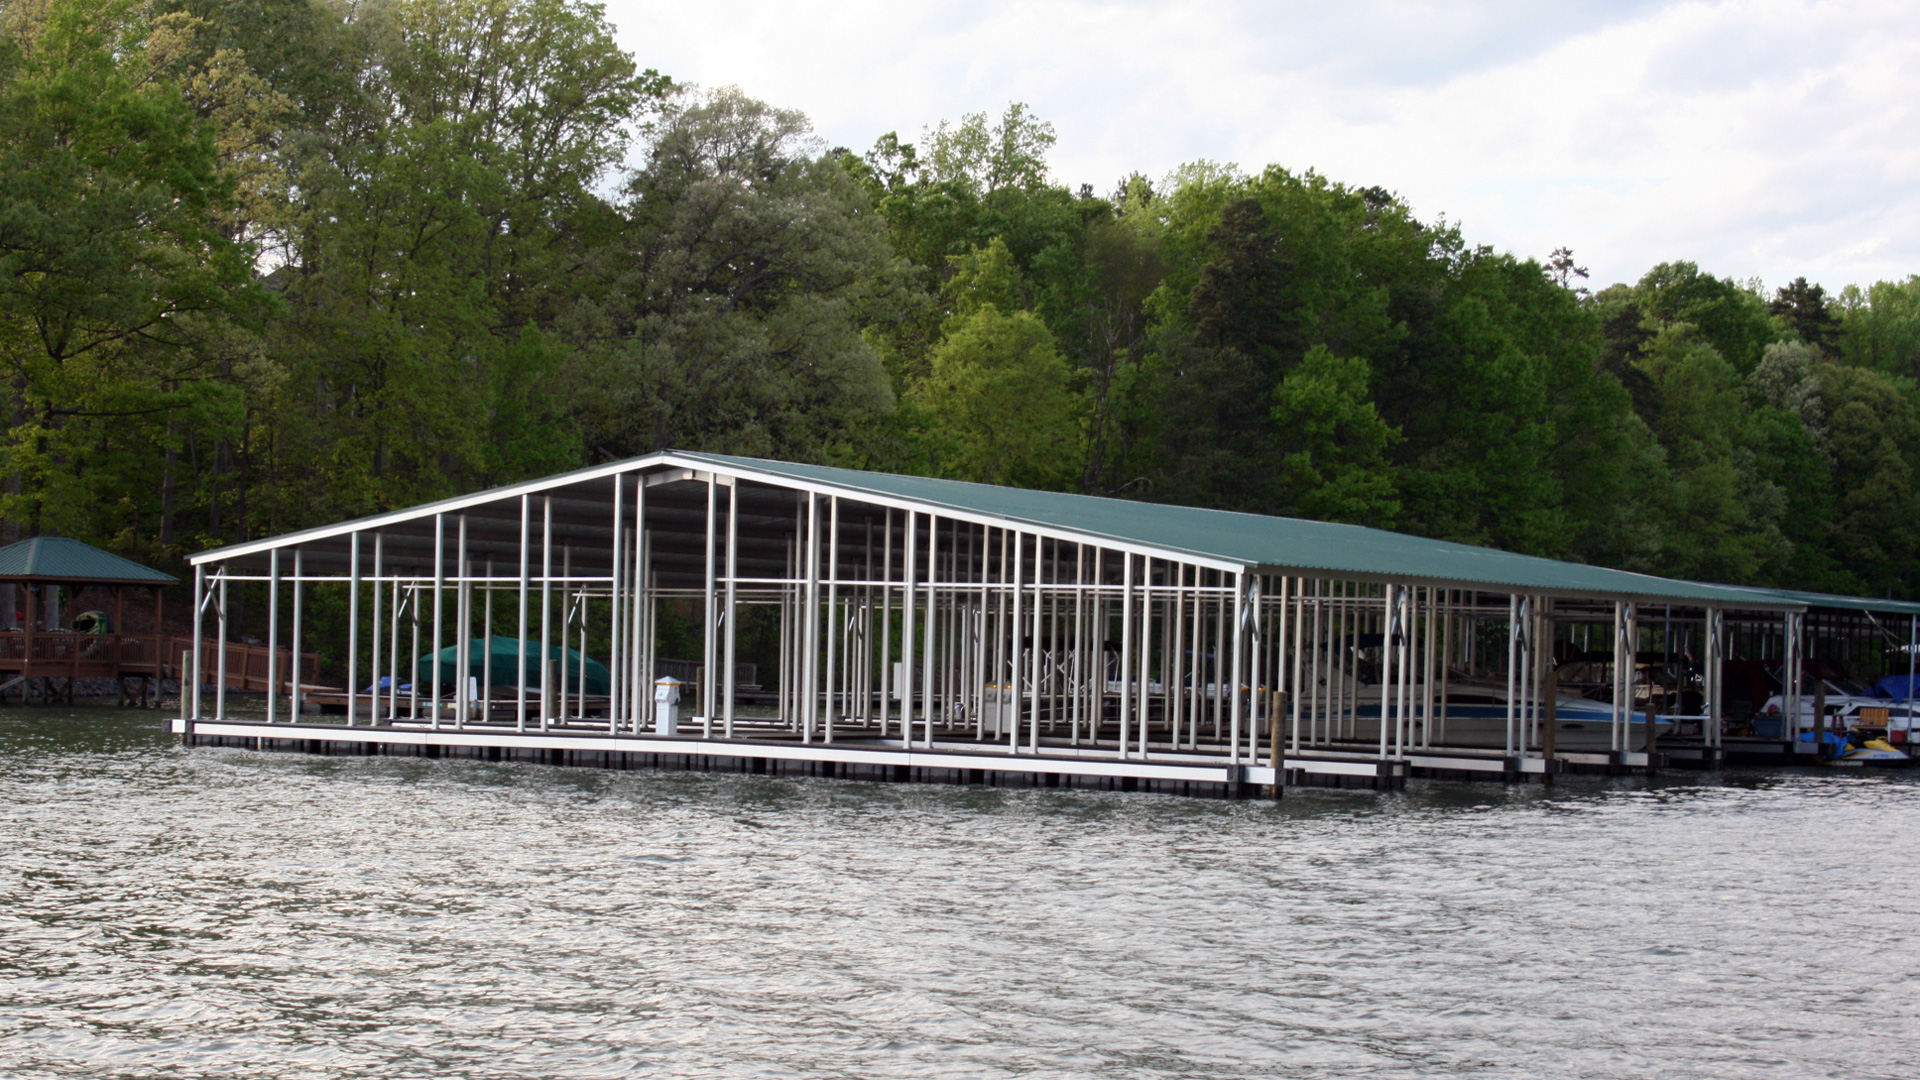 Commercial Gable Aluminum dock with power pedestals